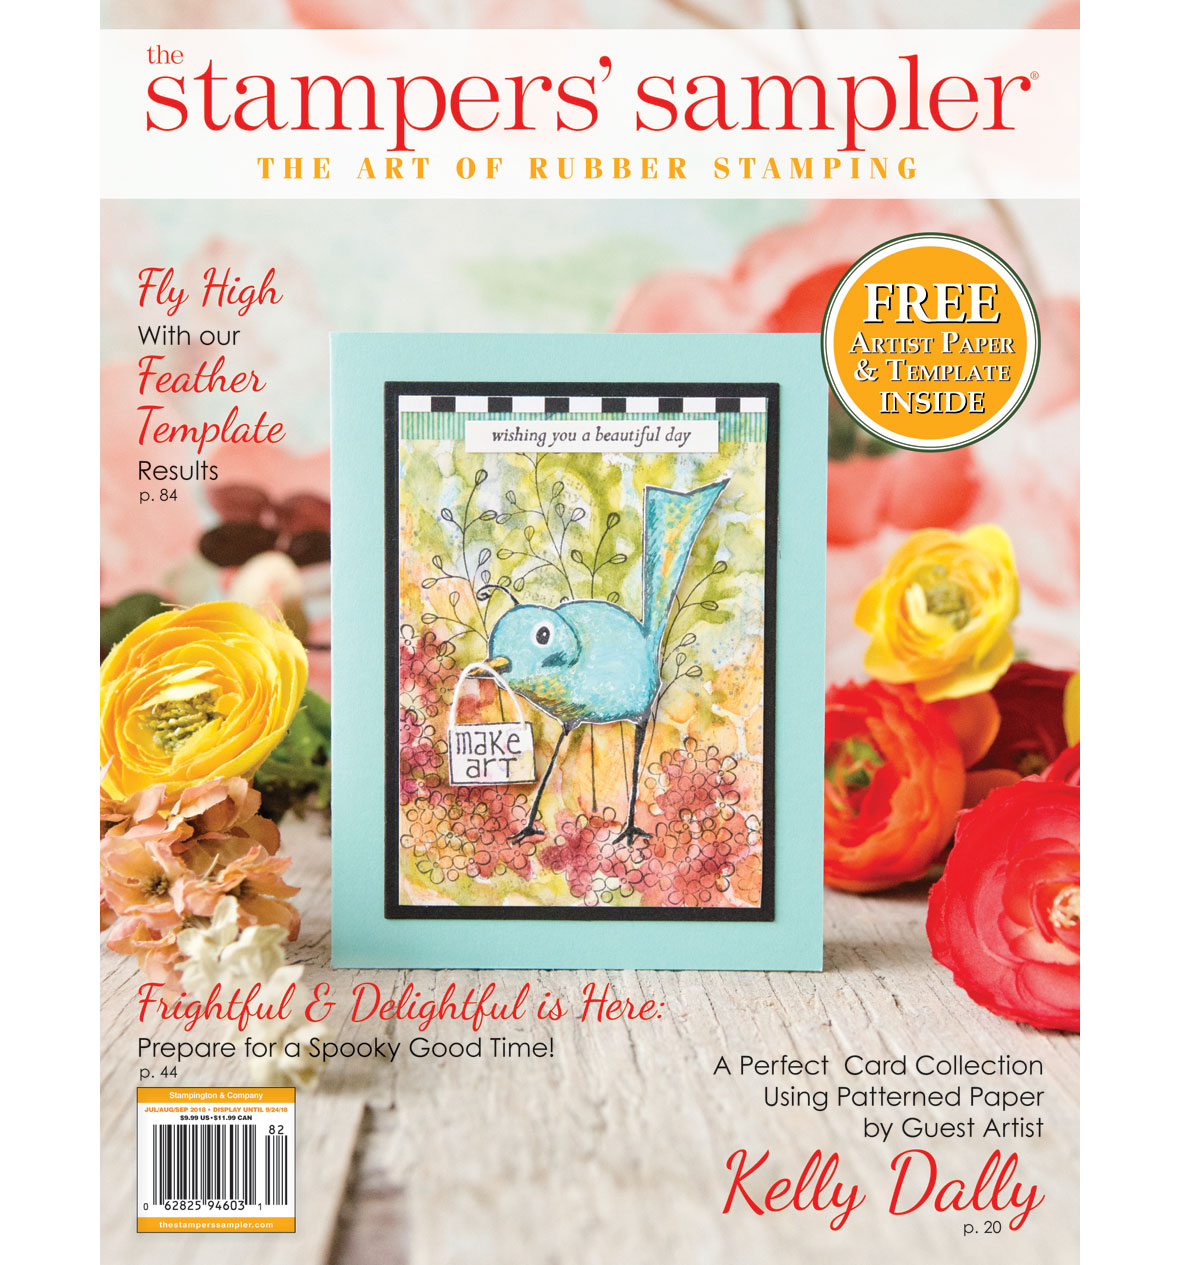 The Stampers' Sampler Magazine